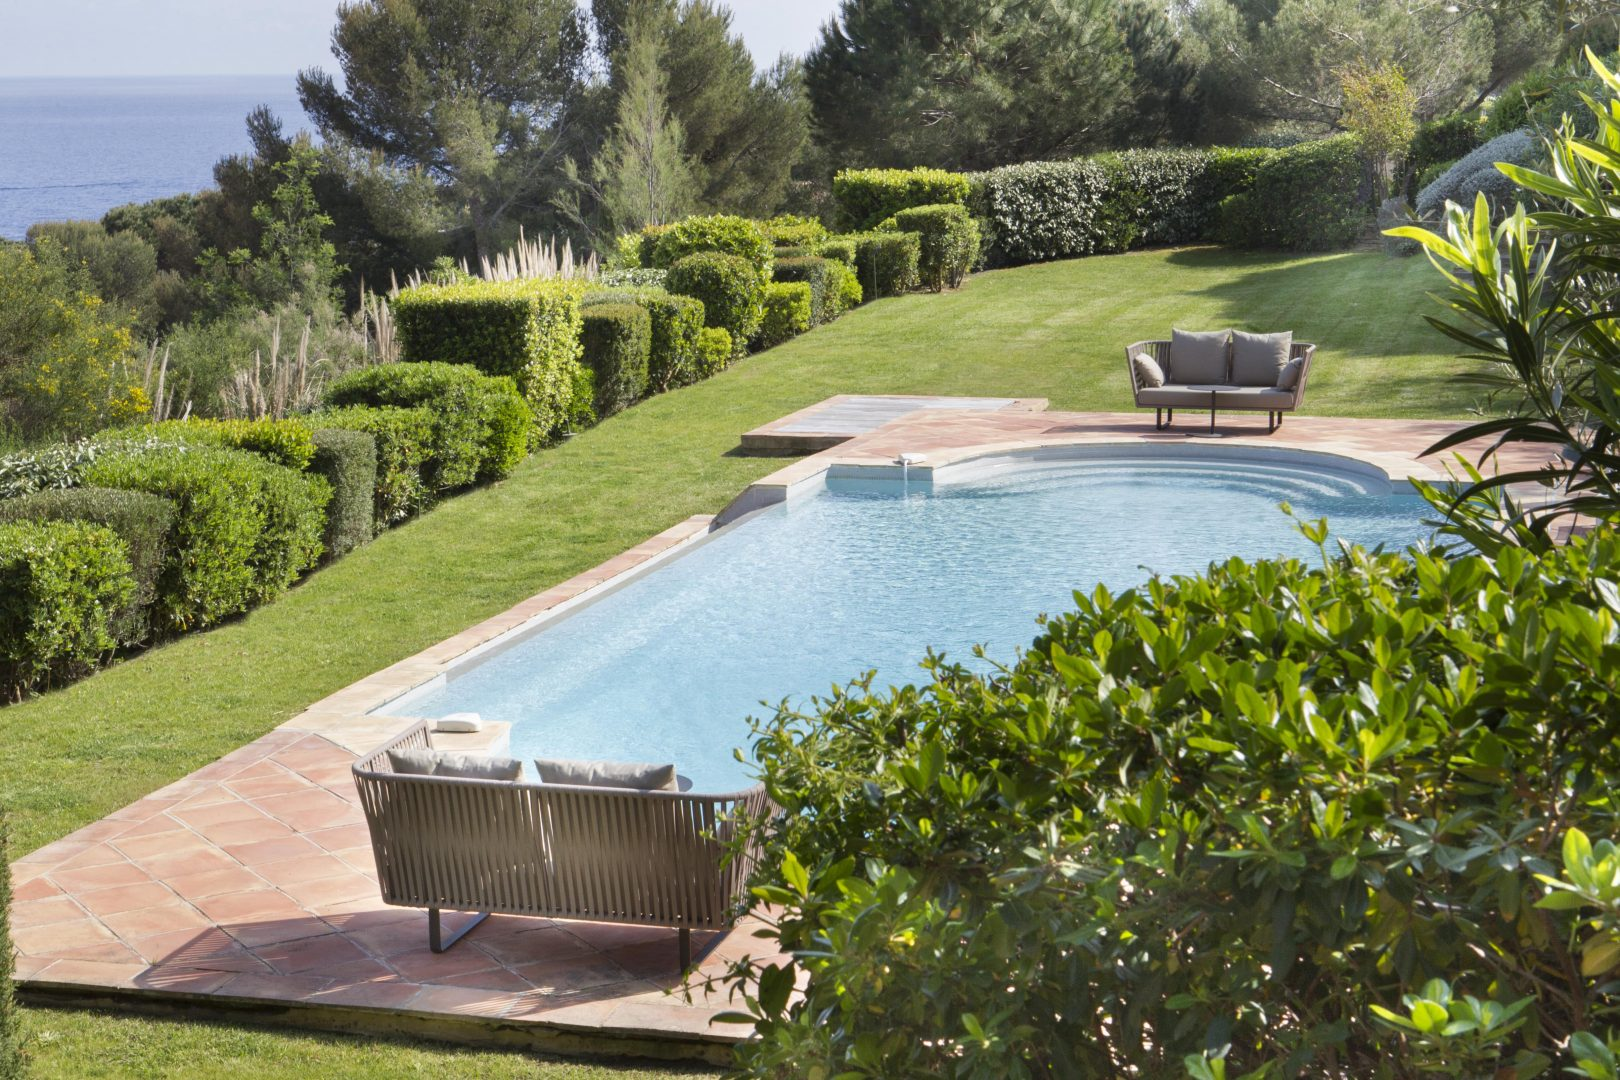 Luxury villa, sleeps 12, seaview, direct sea access, private pool, pool house